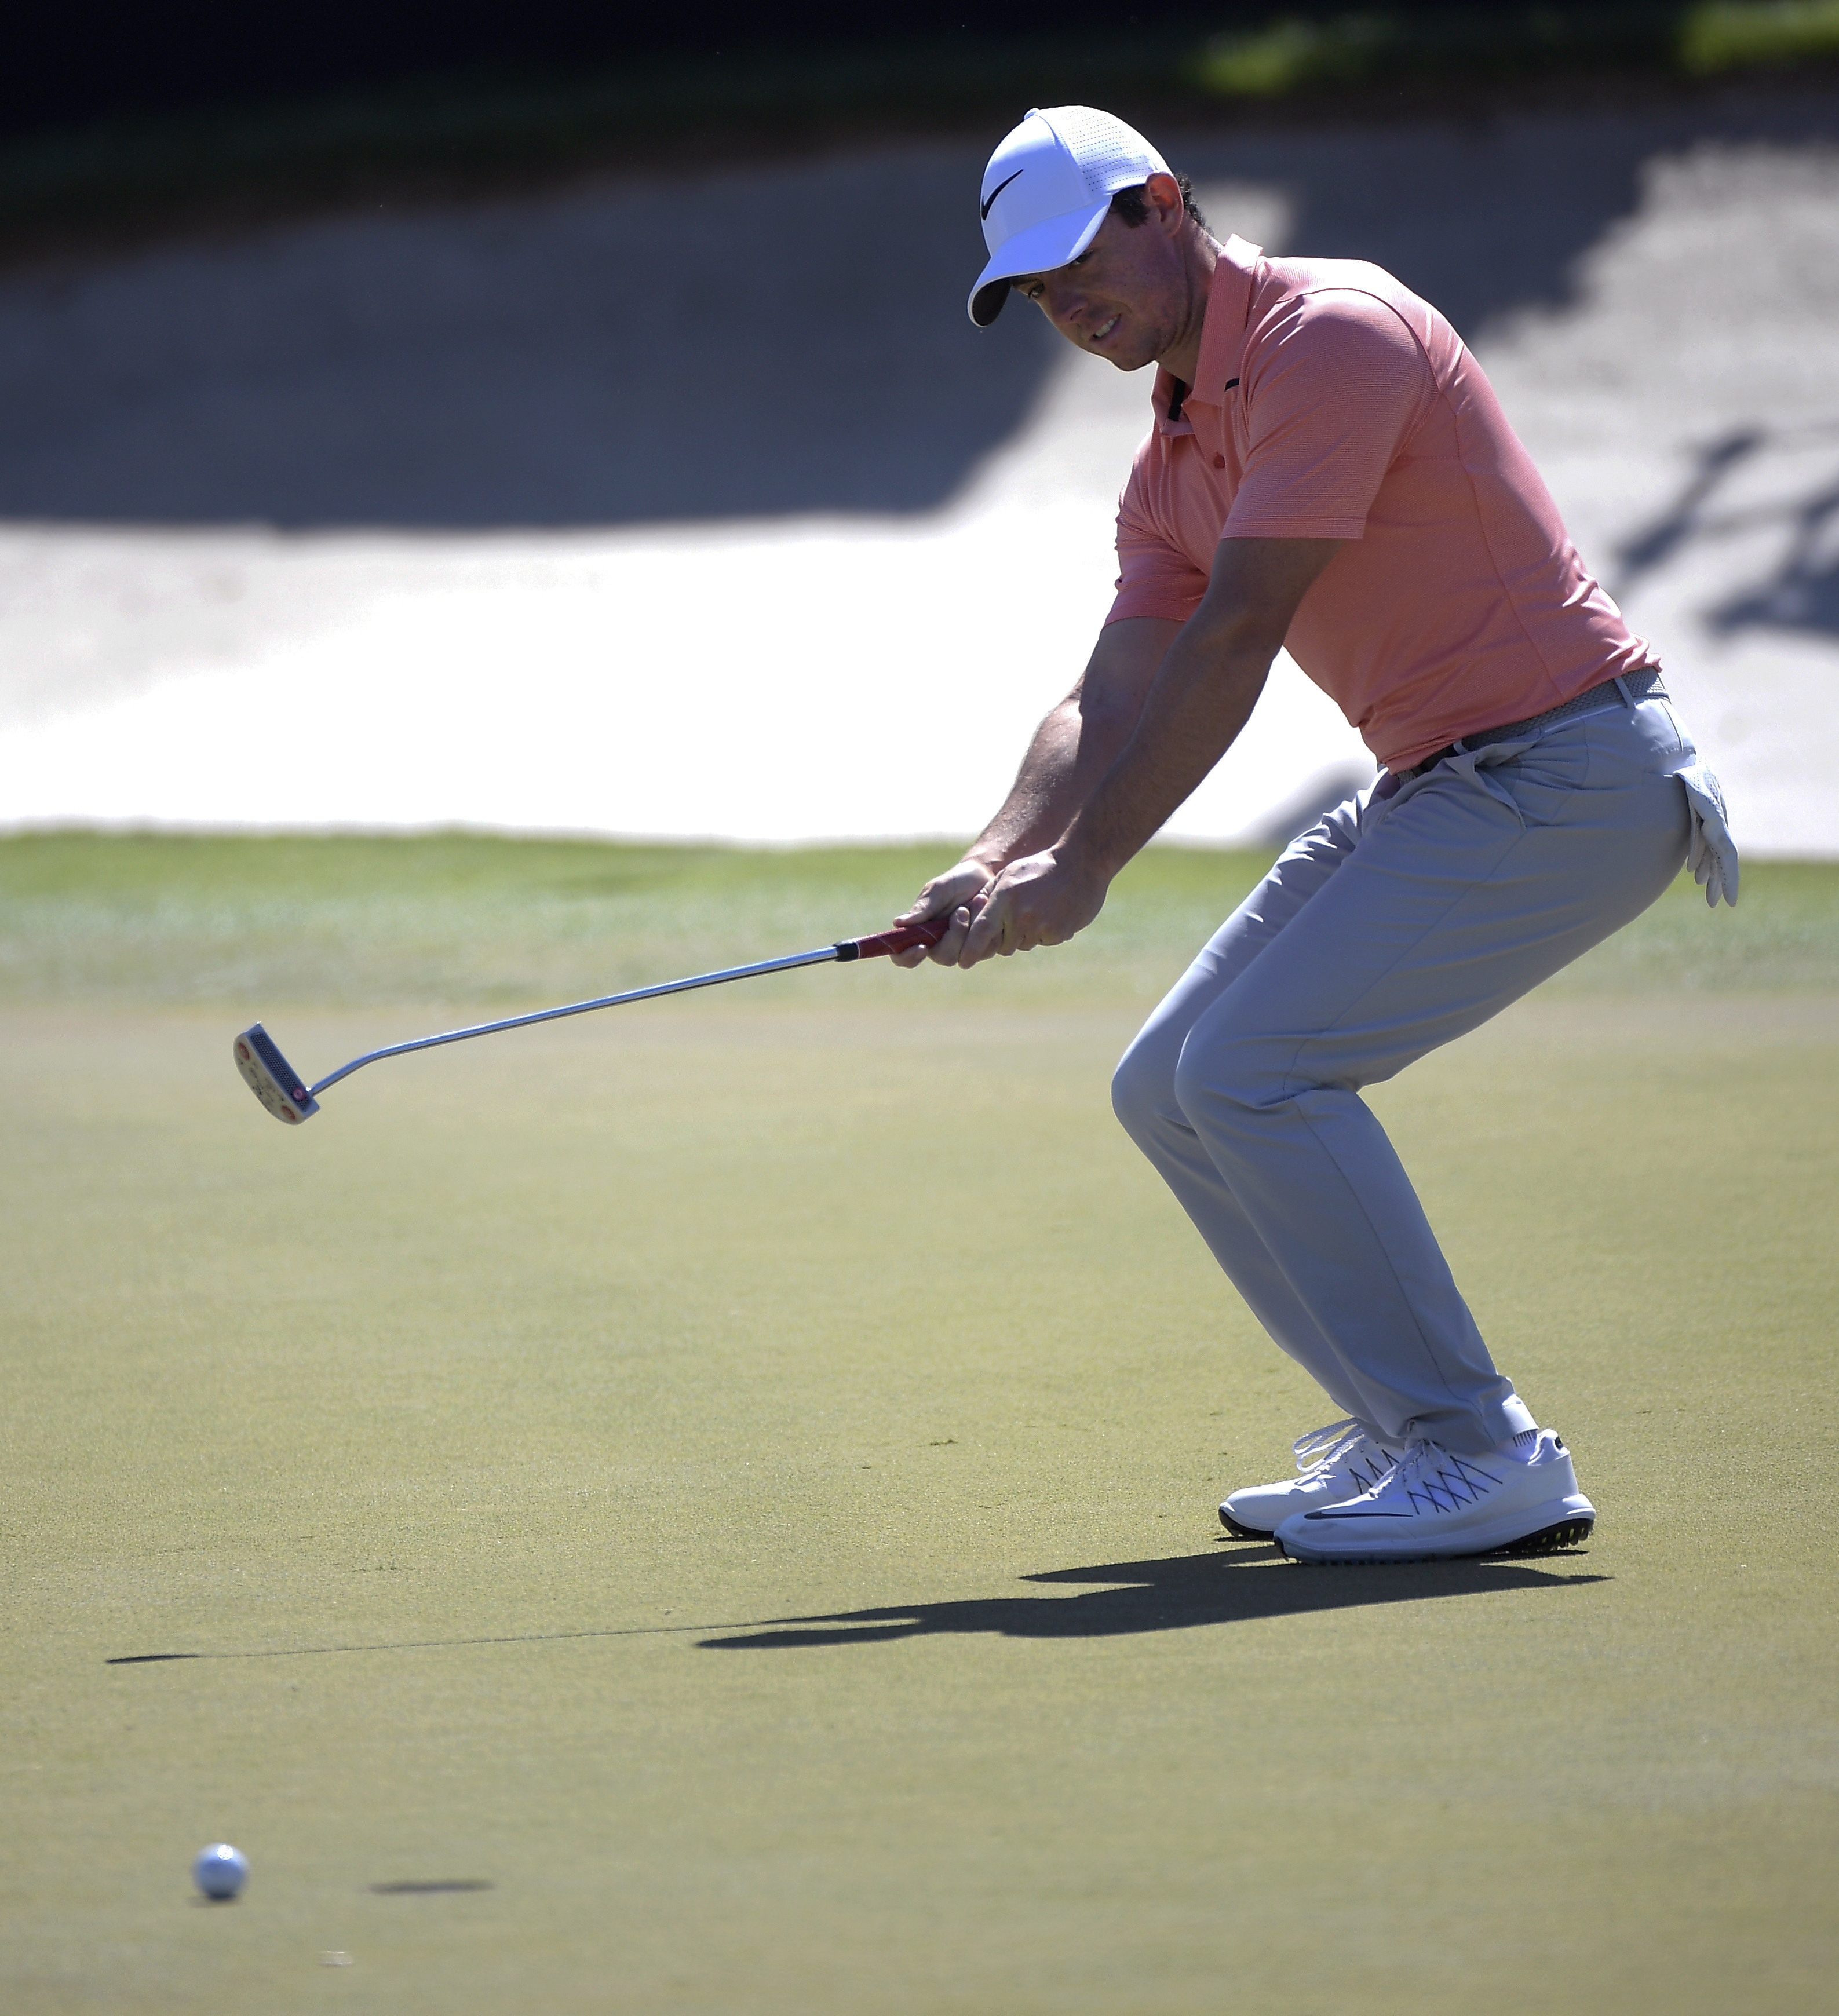 Rory McIlroy, of Northern Ireland, reacts after barely missing a putt for birdie on the eighth green during the third round of the Arnold Palmer Invitational golf tournament in Orlando, Fla., Saturday, March 18, 2017. (AP Photo/Phelan M. Ebenhack)